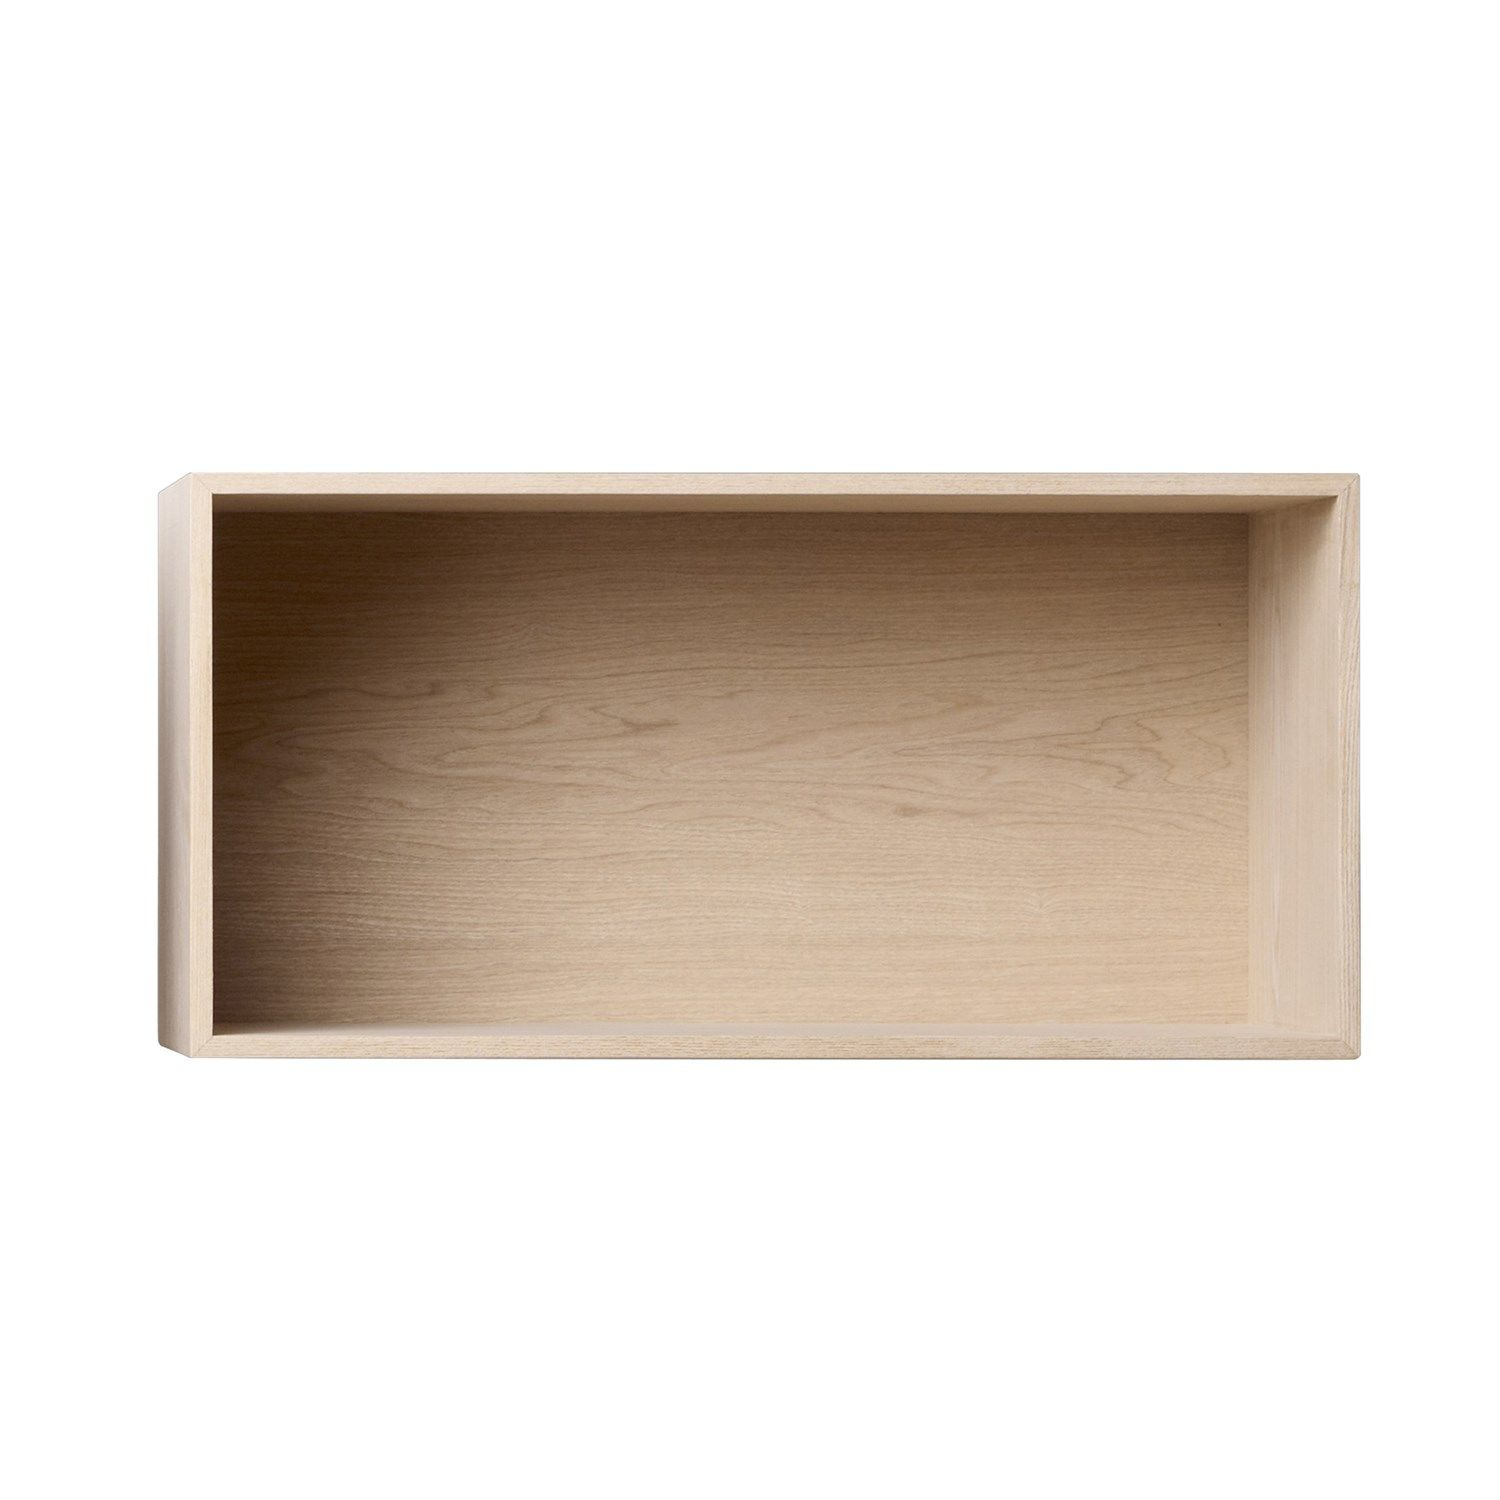 Muuto - Mini Stacked 2.0 - Large - Eg